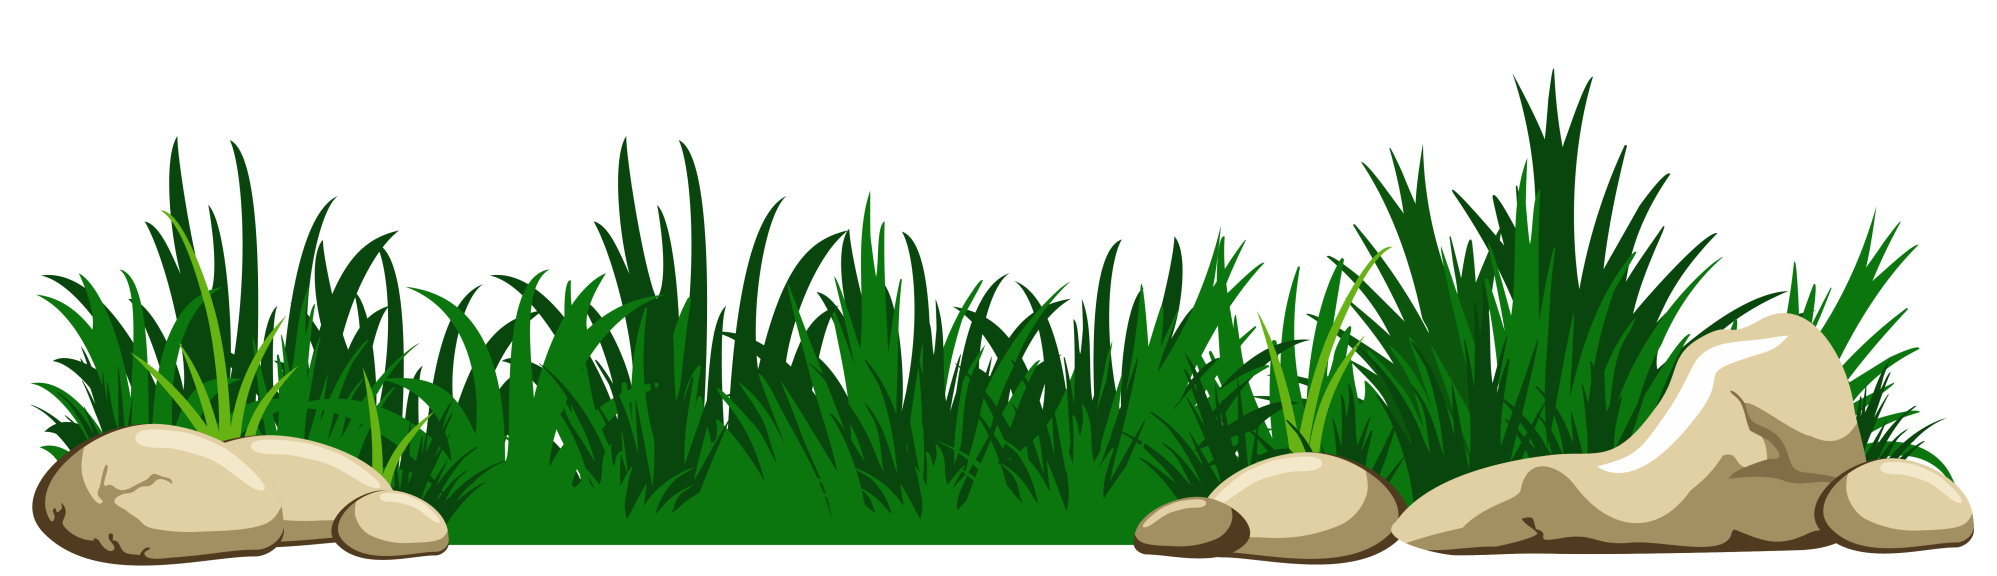 hight resolution of grass with rocks transparent png clipart